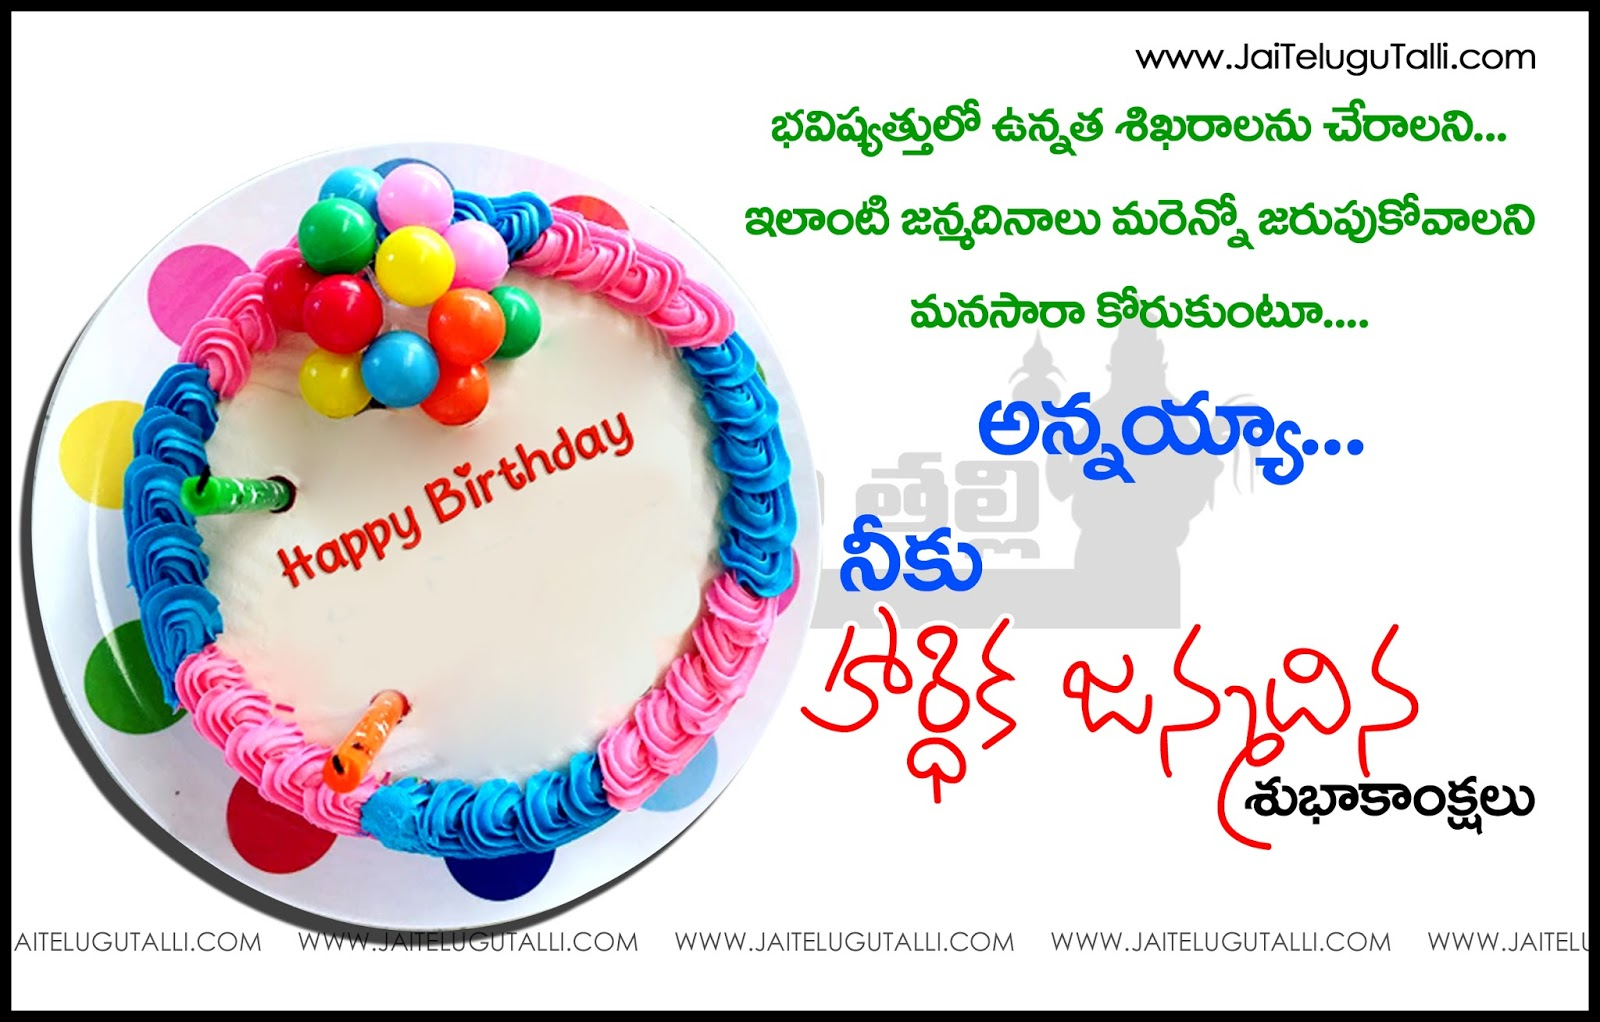 Telugu quotes happy birthday quotations in telugu images for brother here is a telugu happy birthday images telugu quotes happy birthday wishes happy birthday m4hsunfo